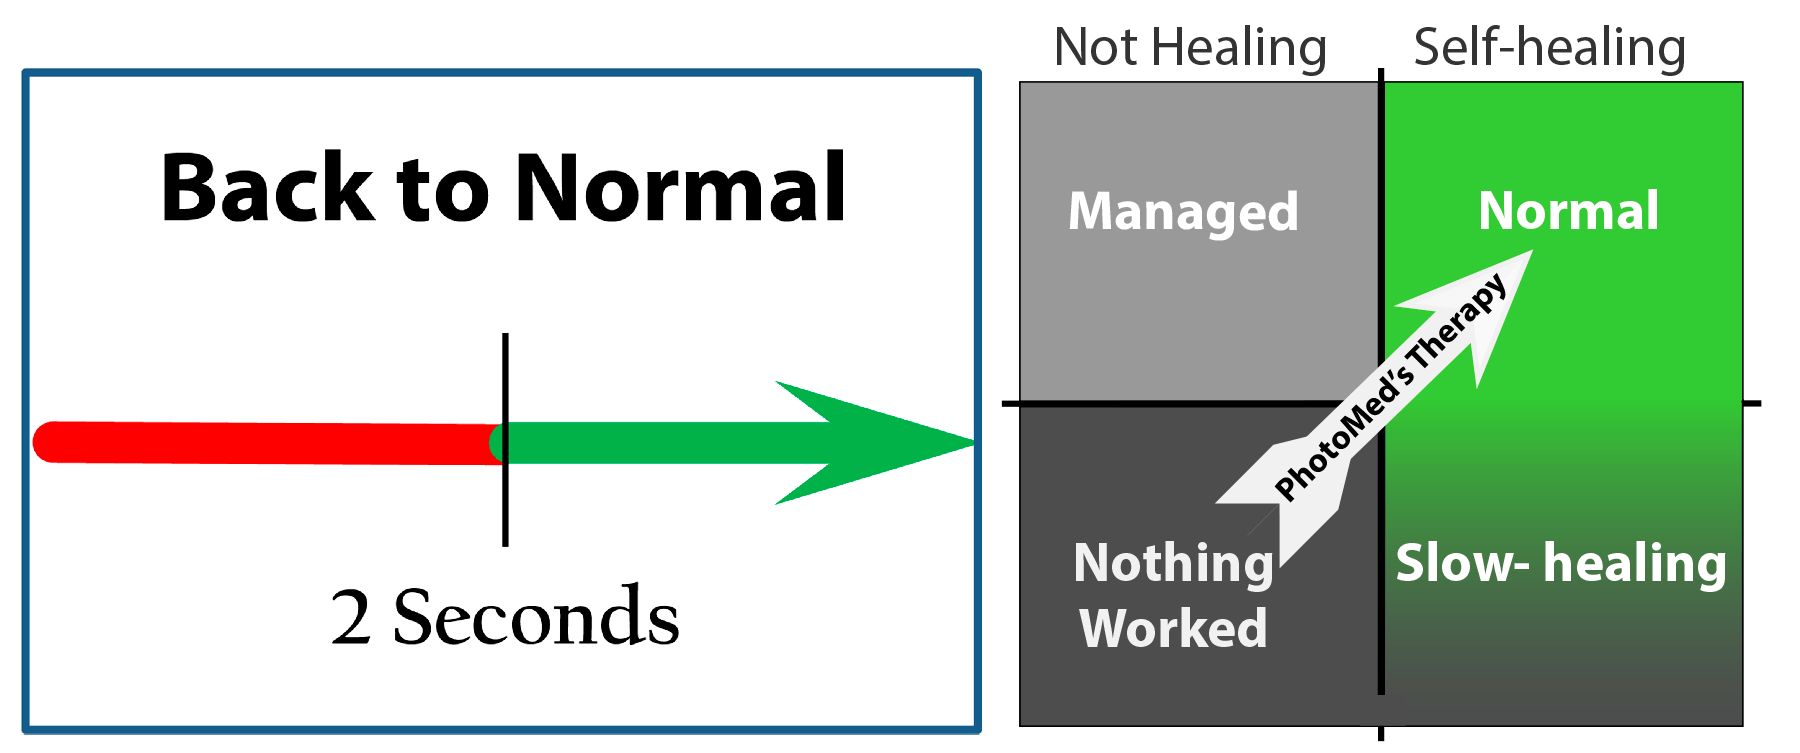 The back-to-normal function event depicted on a timeline and as state diagram. Could the years of impairment account for its unexpectedness? Would you expect to find a dose-response relationship? Could this event happen unnoticed by people who do not experience chronic pain after their injuries heal?